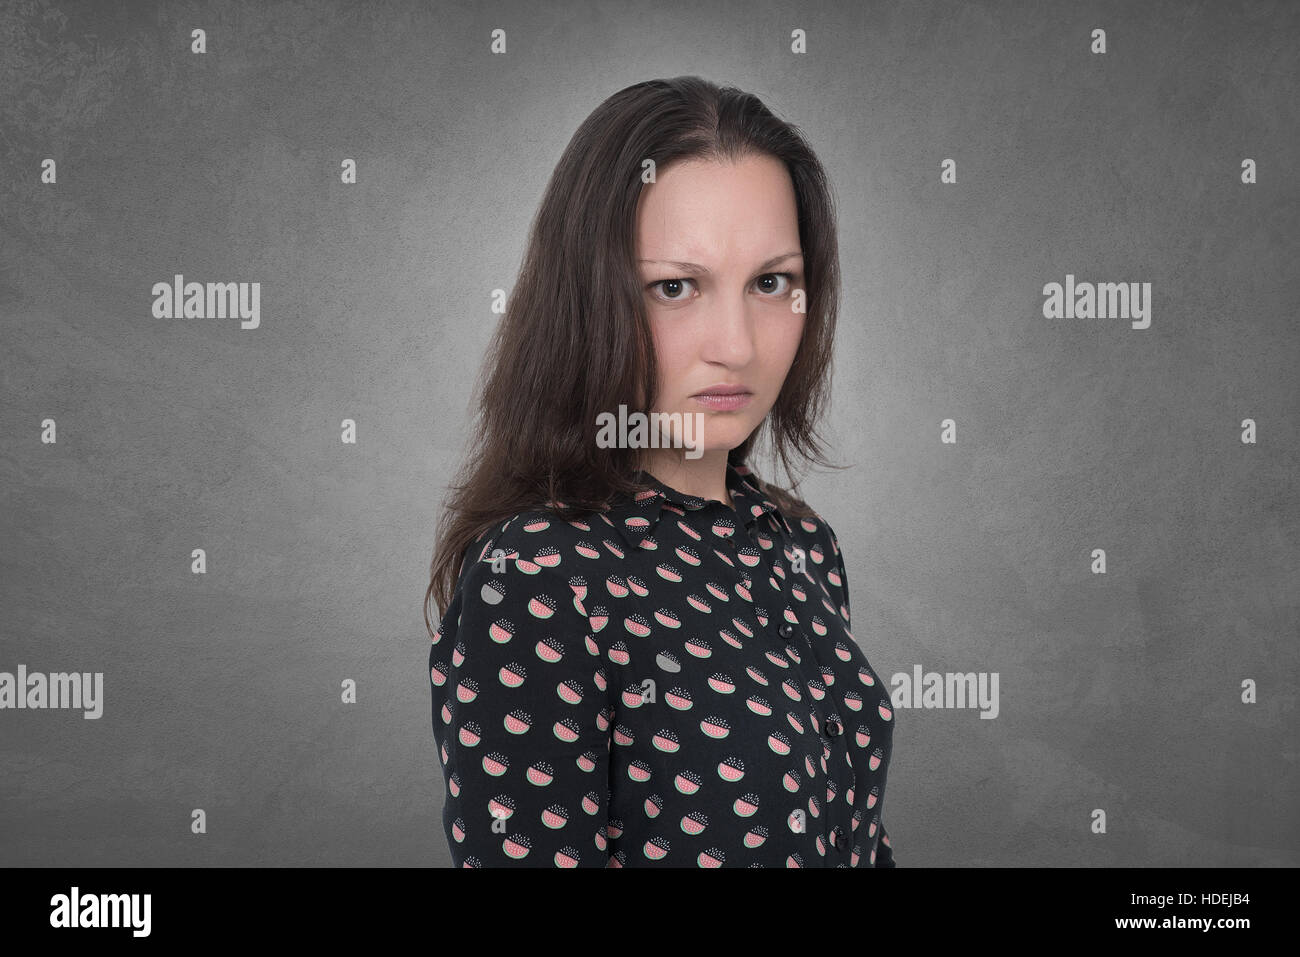 Angry Woman expression on grey wall - Stock Image